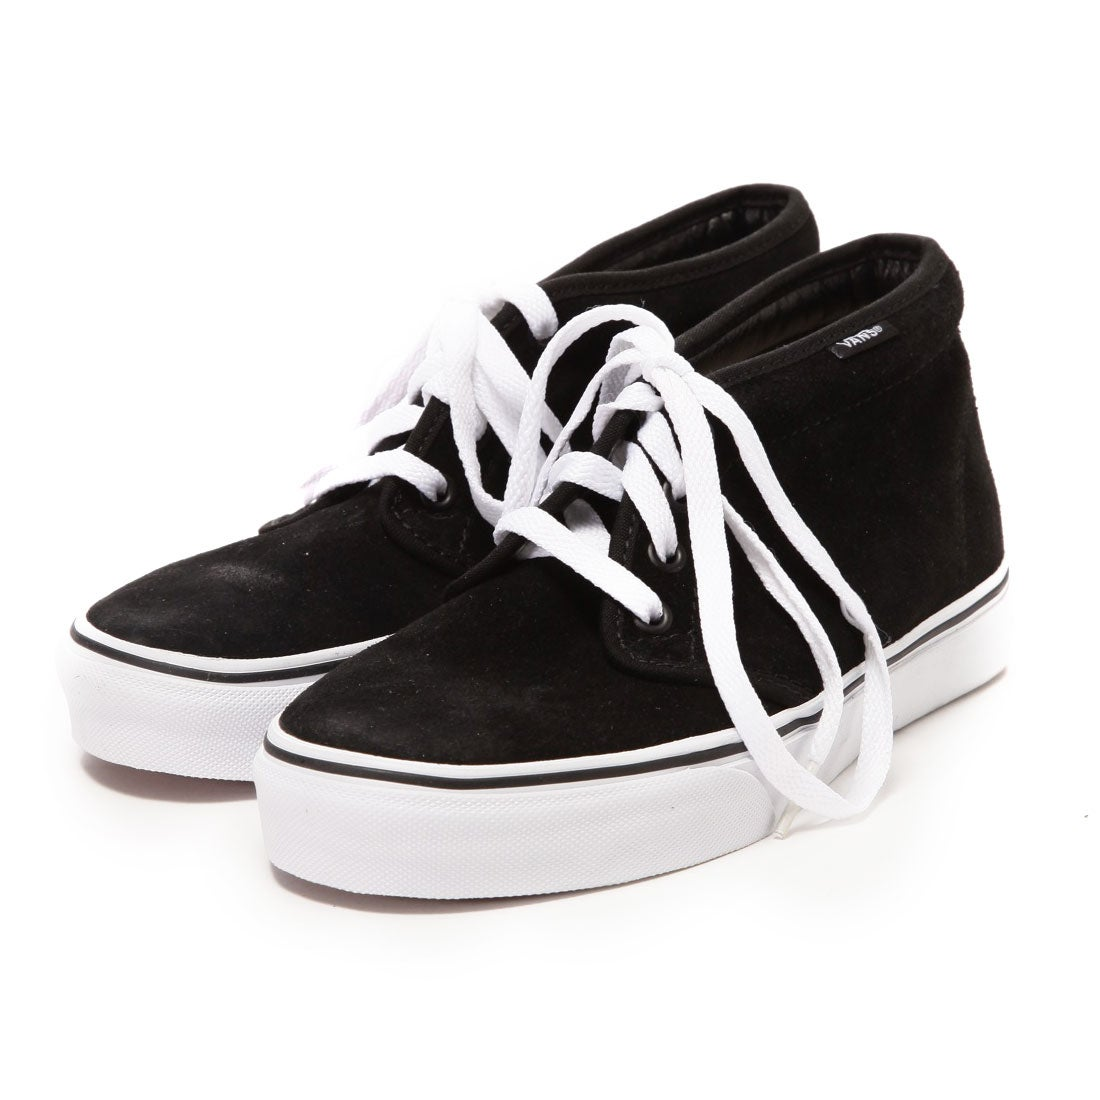 ヴァンズ VANS CHAPTER CHUKKA BOOT(BLACK/WHITE) レディース メンズ